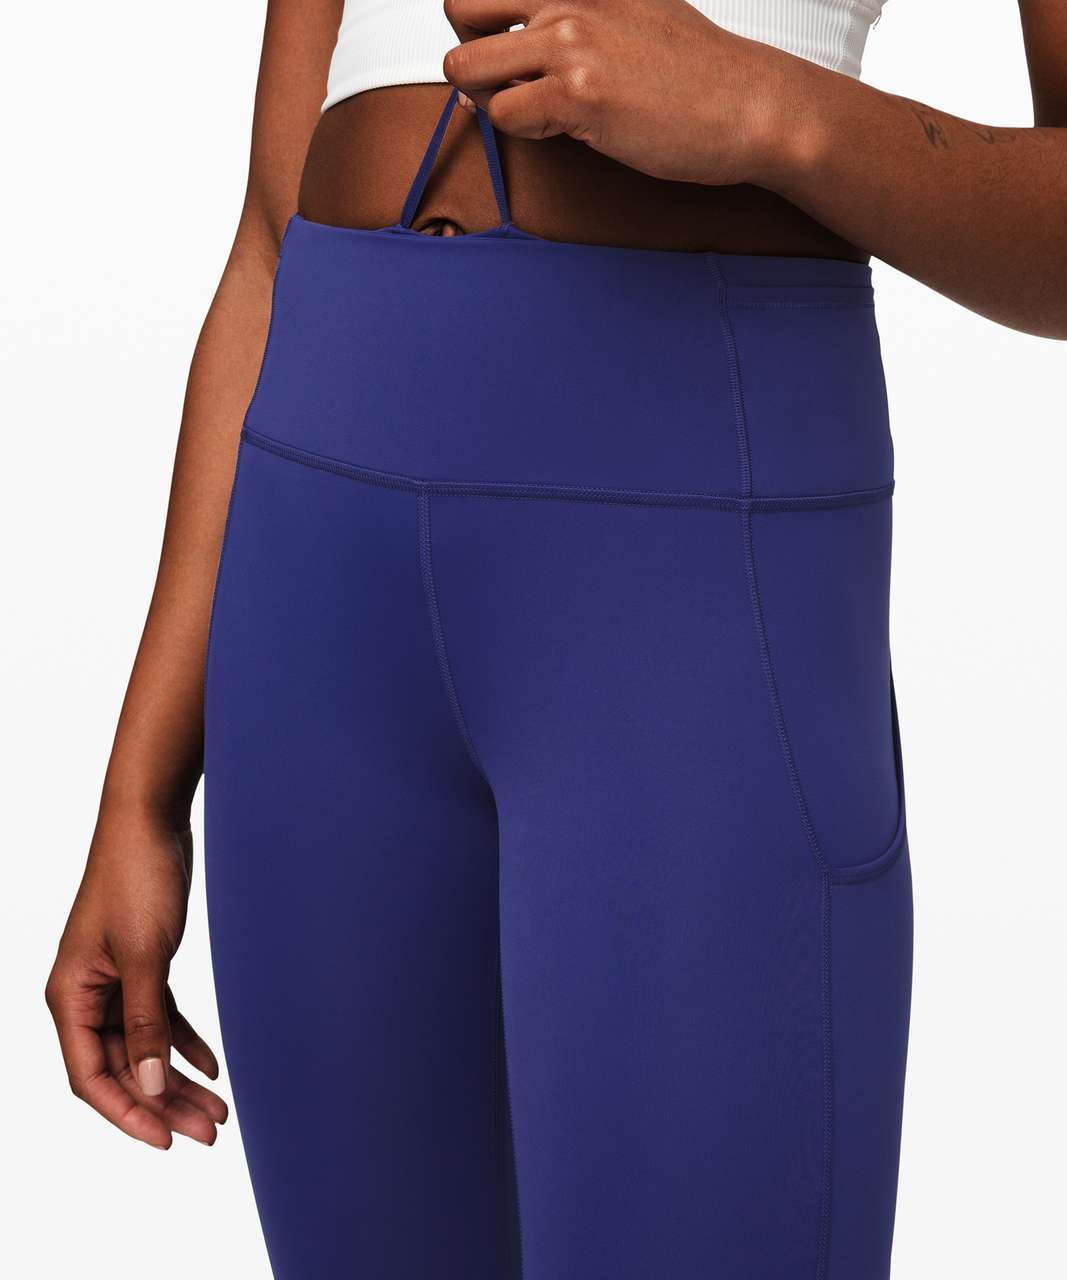 "Lululemon Fast and Free Tight II 25"" *Non-Reflective Nulux - Larkspur"